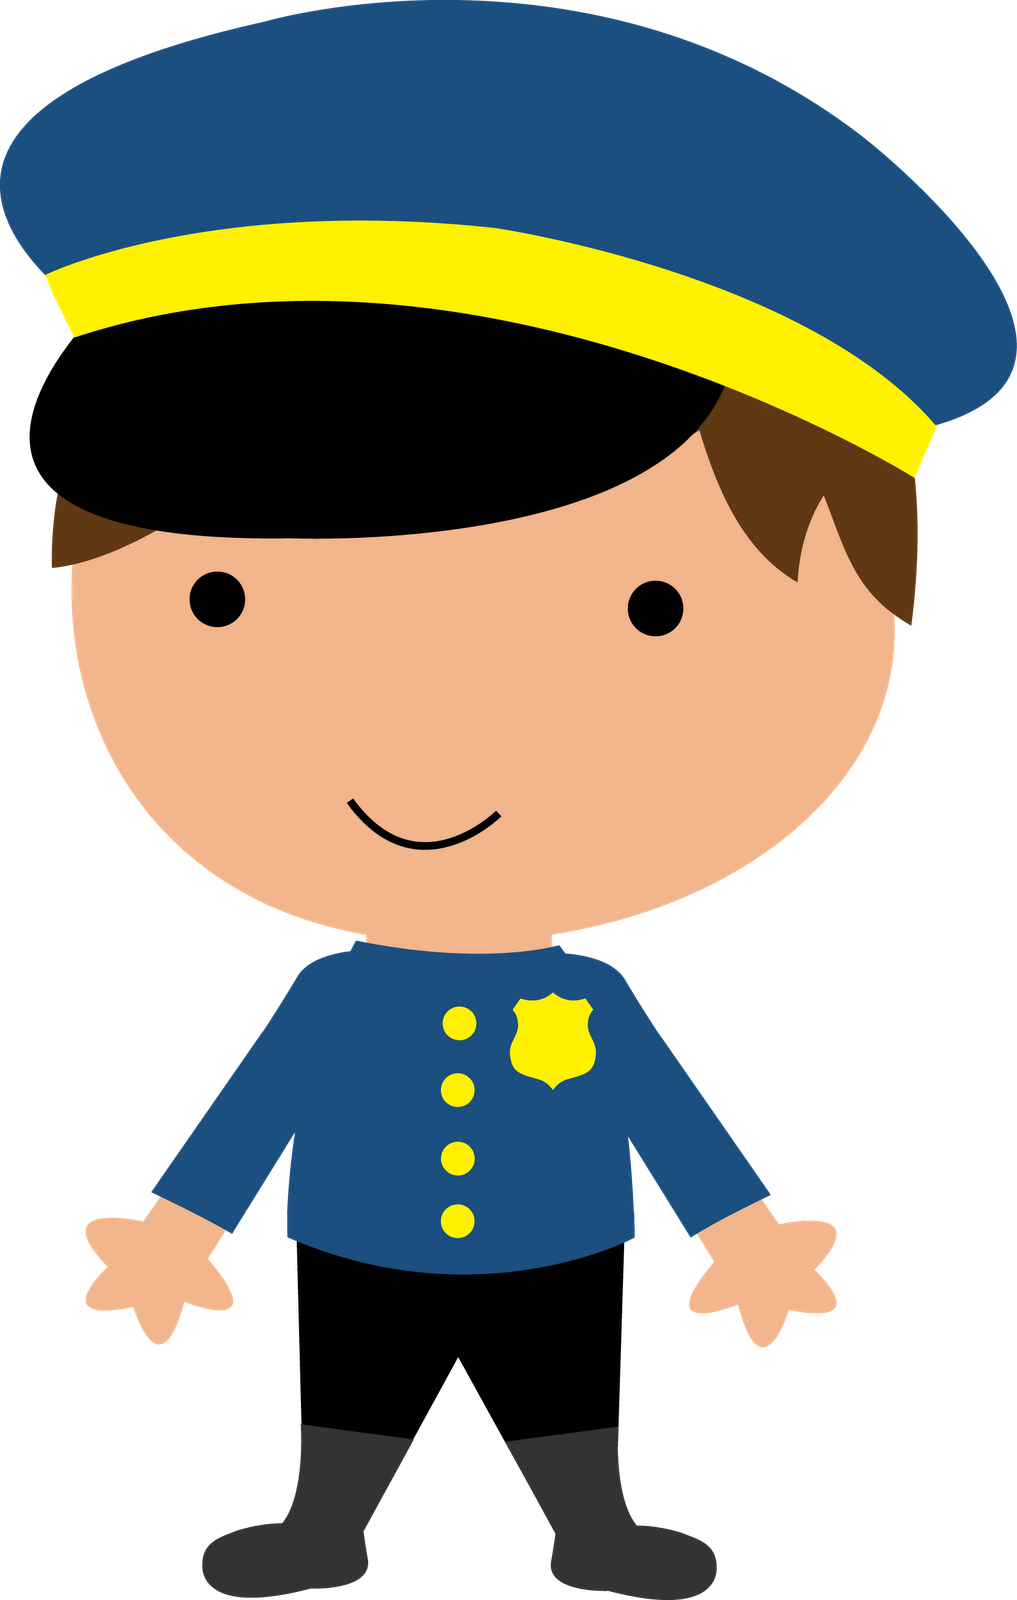 Policeman community theme workers. Kid clipart police